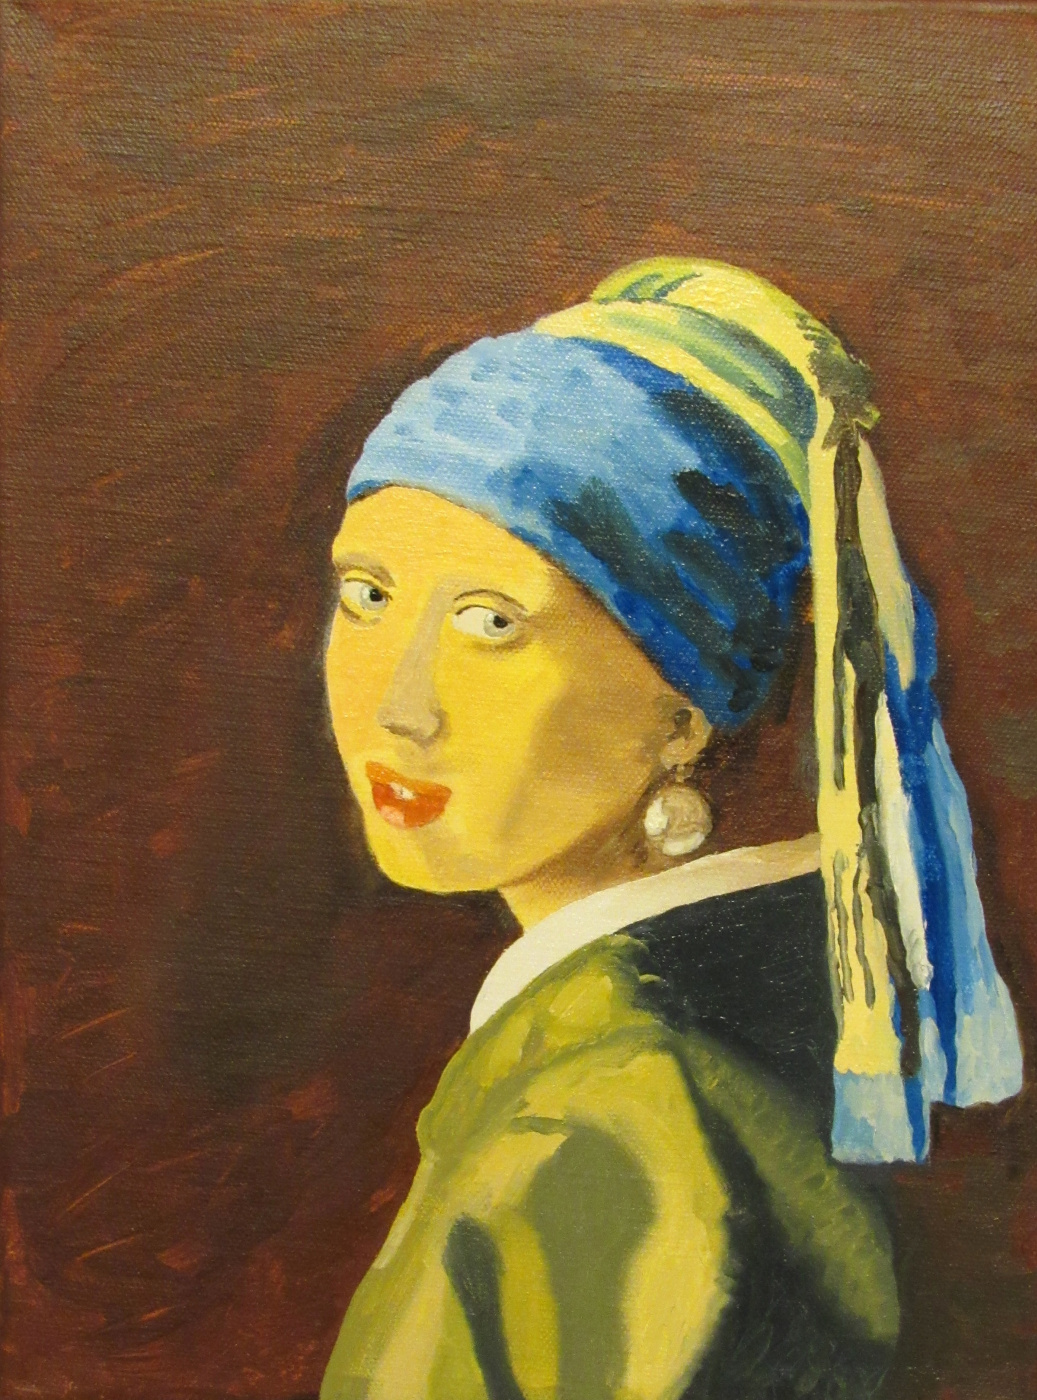 Artashes Badalyan. Vermeer. Girl with a pearl earring (copy) - hm - 40x30